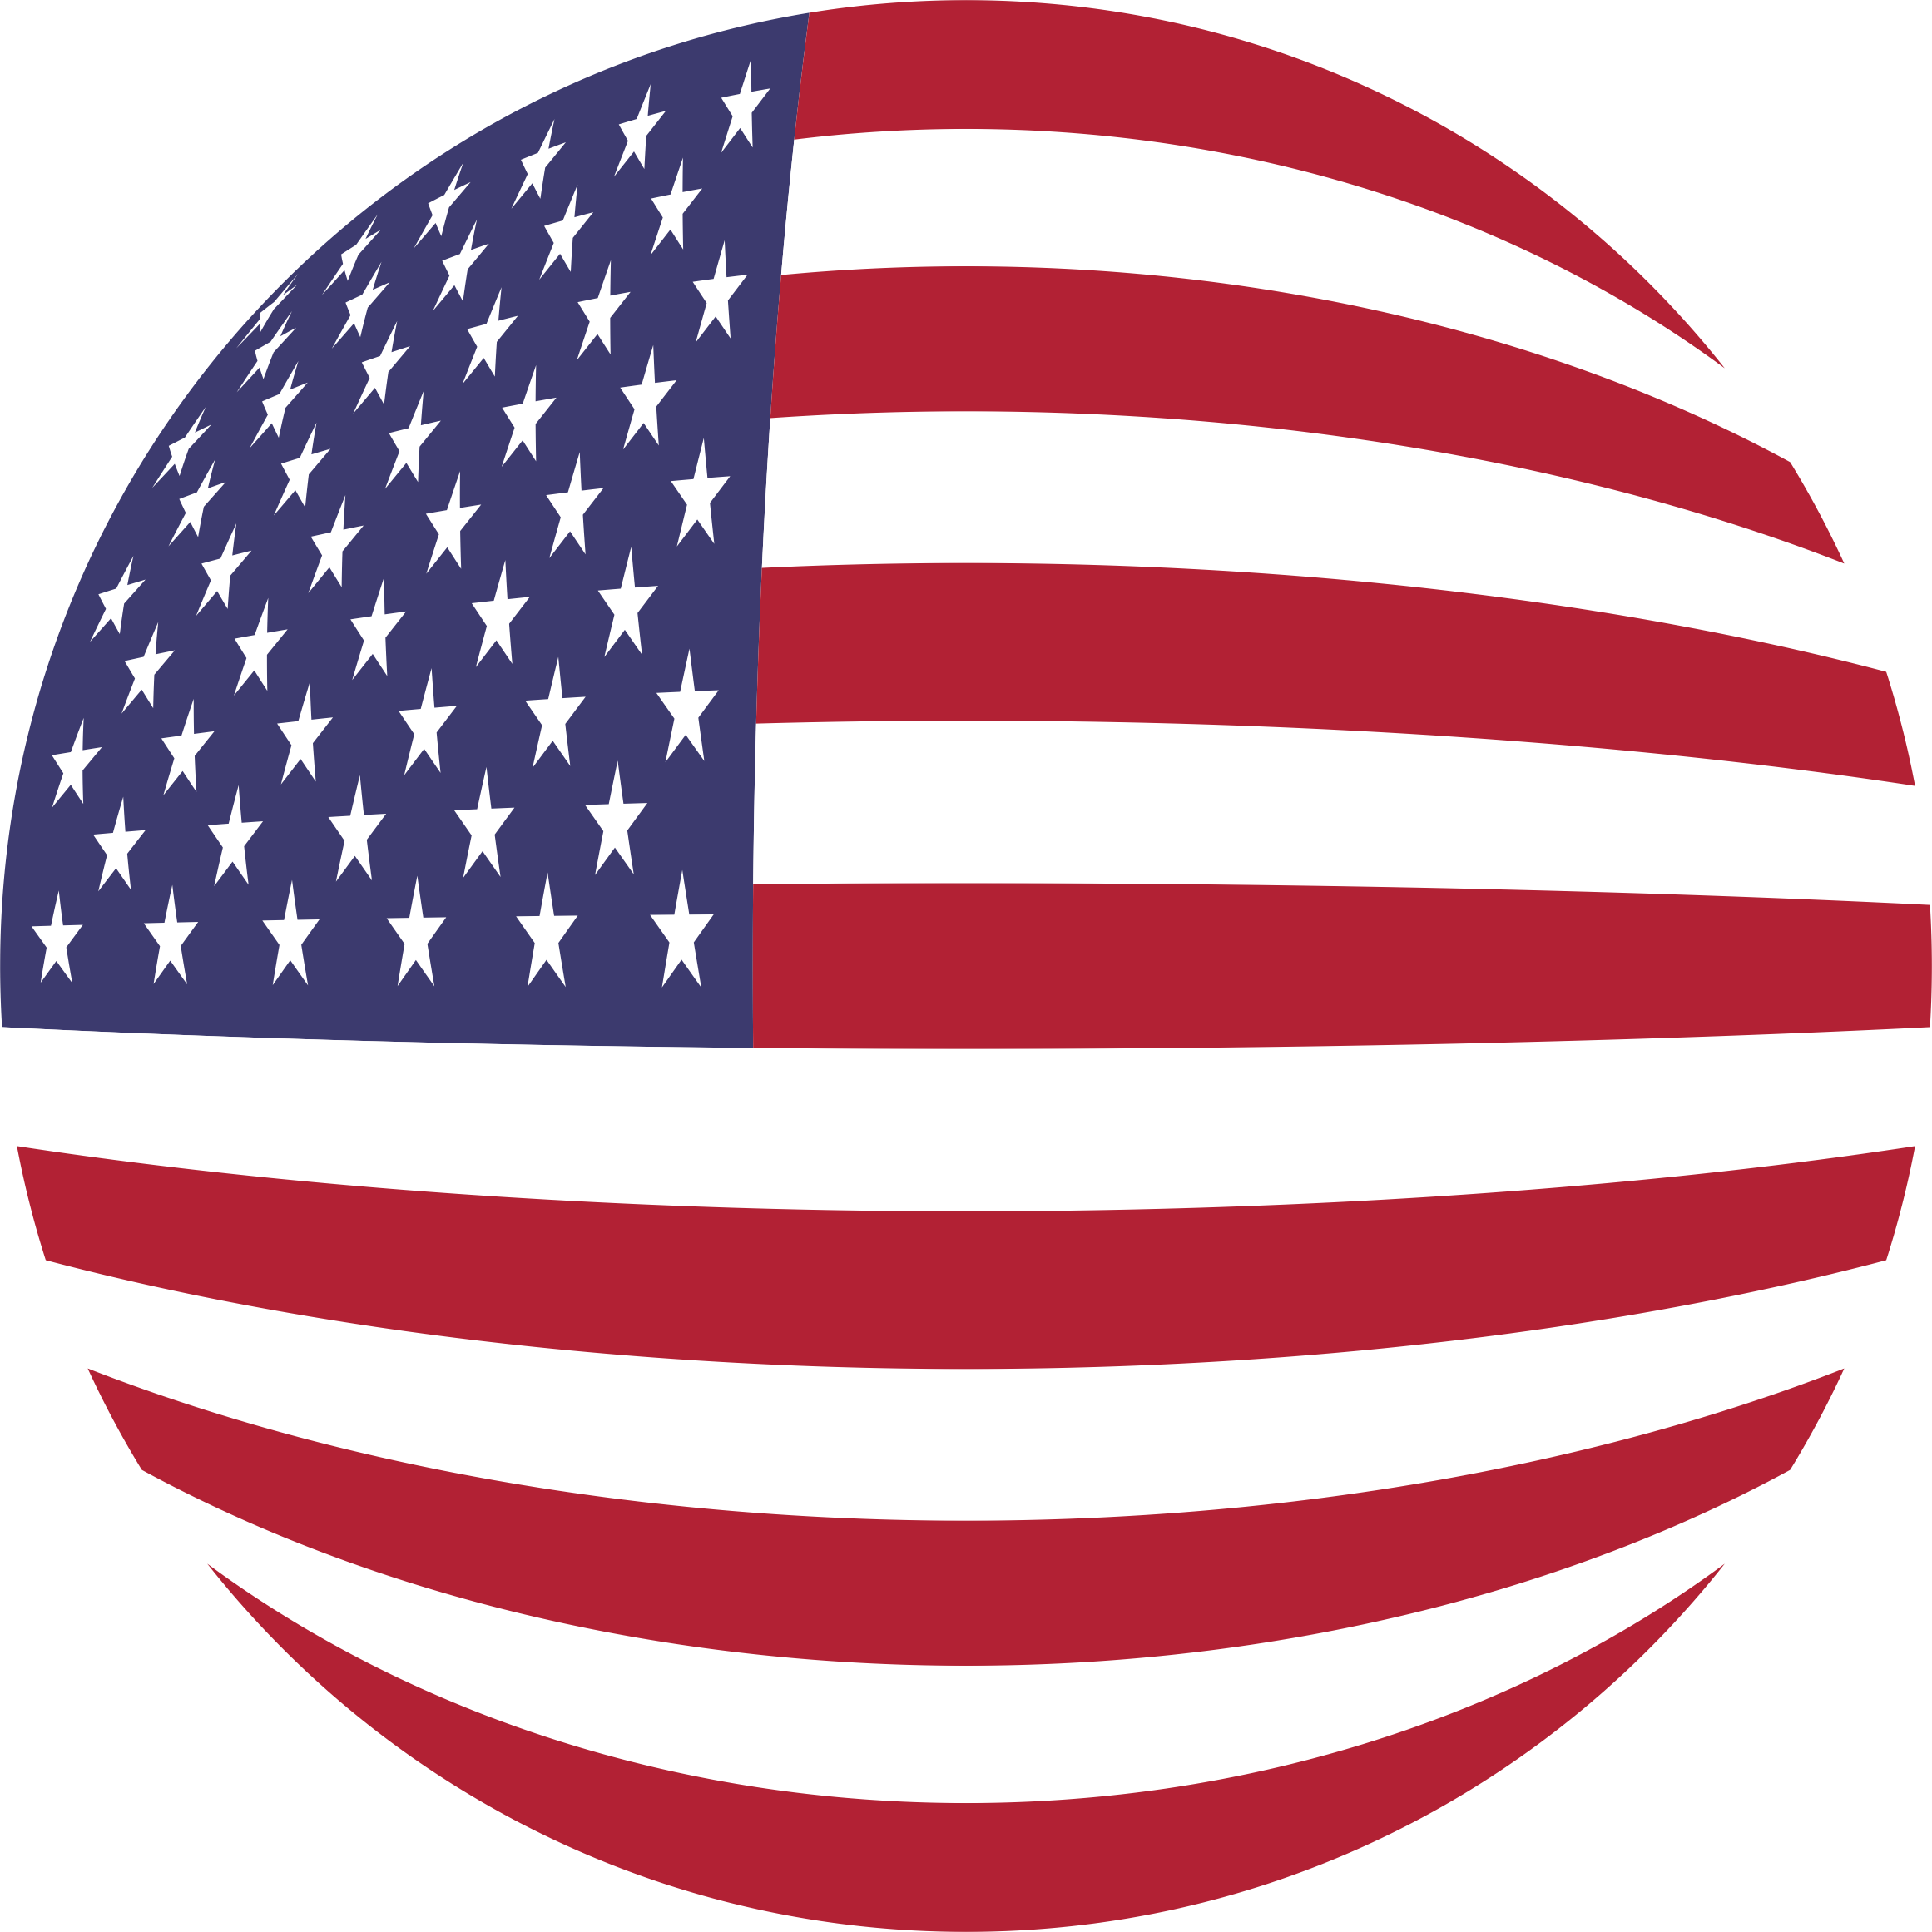 American flag .png. Orb icons png free